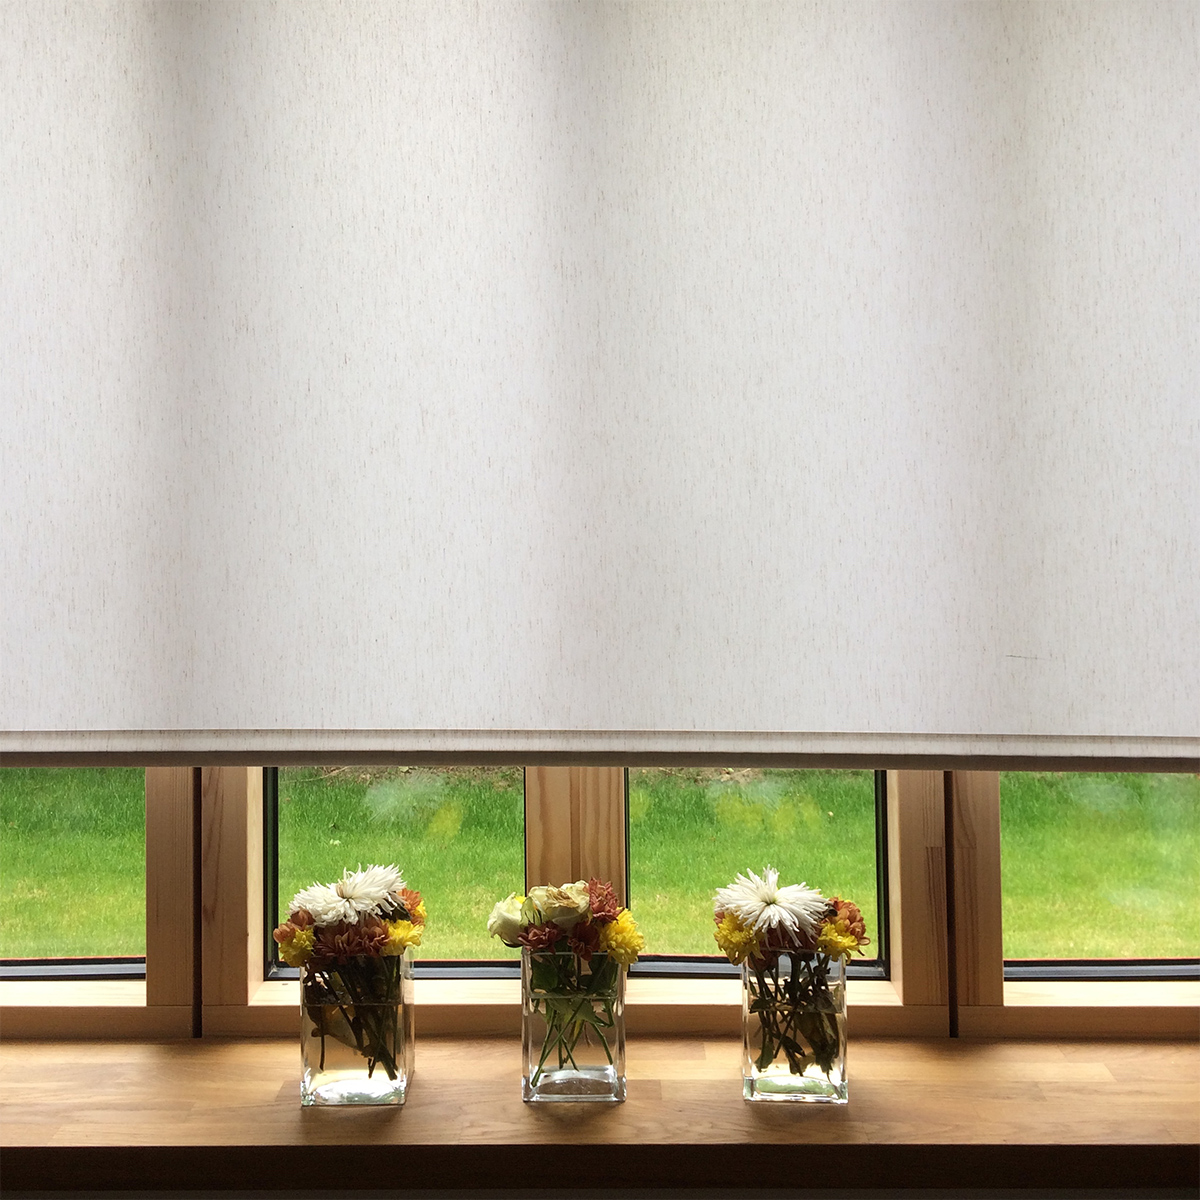 flowers-on-window-sill.jpg